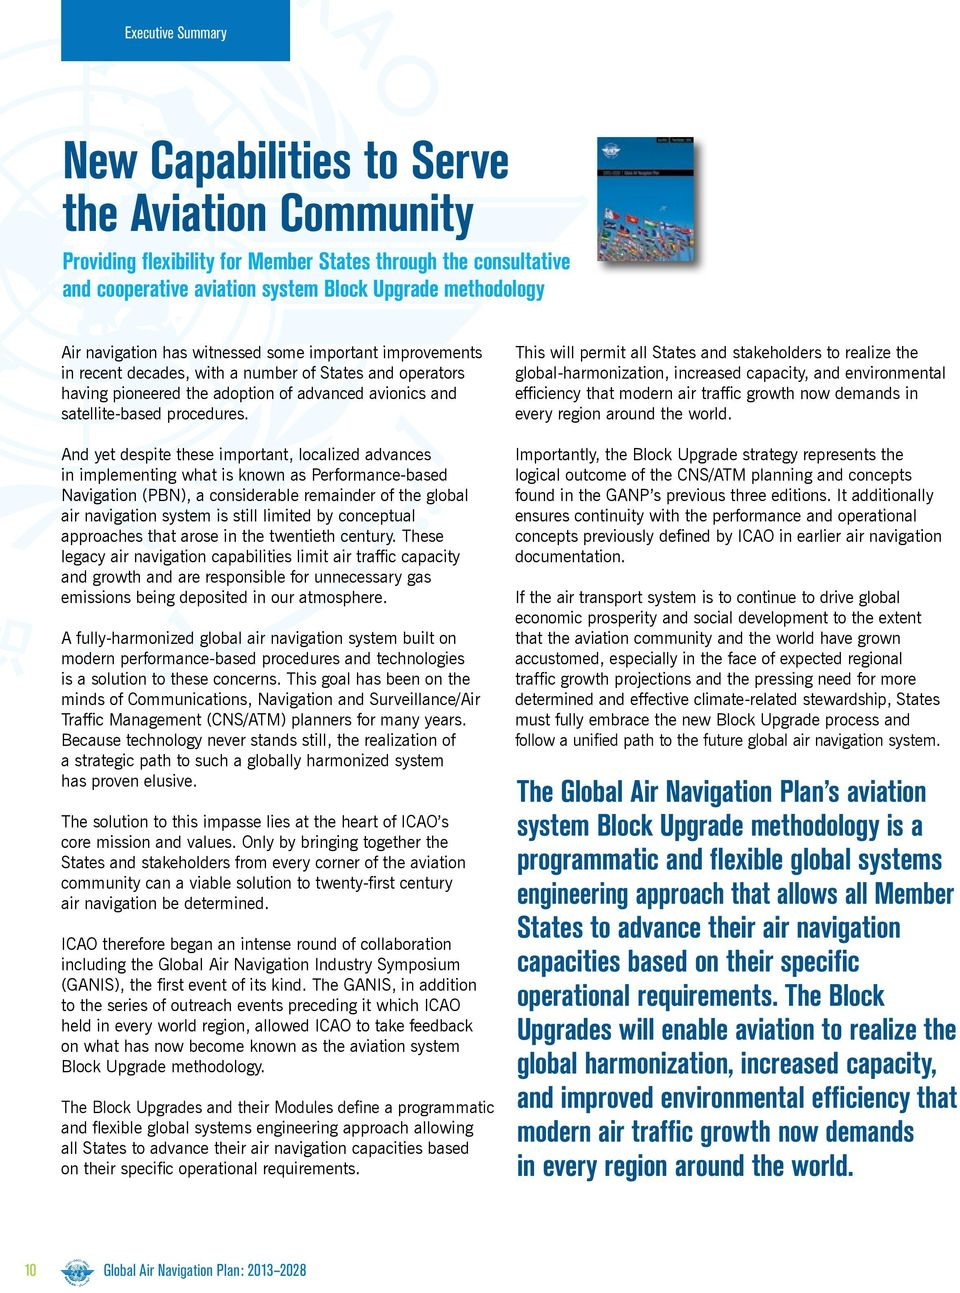 And yet despite these important, localized advances in implementing what is known as Performance-based Navigation (PBN), a considerable remainder of the global air navigation system is still limited